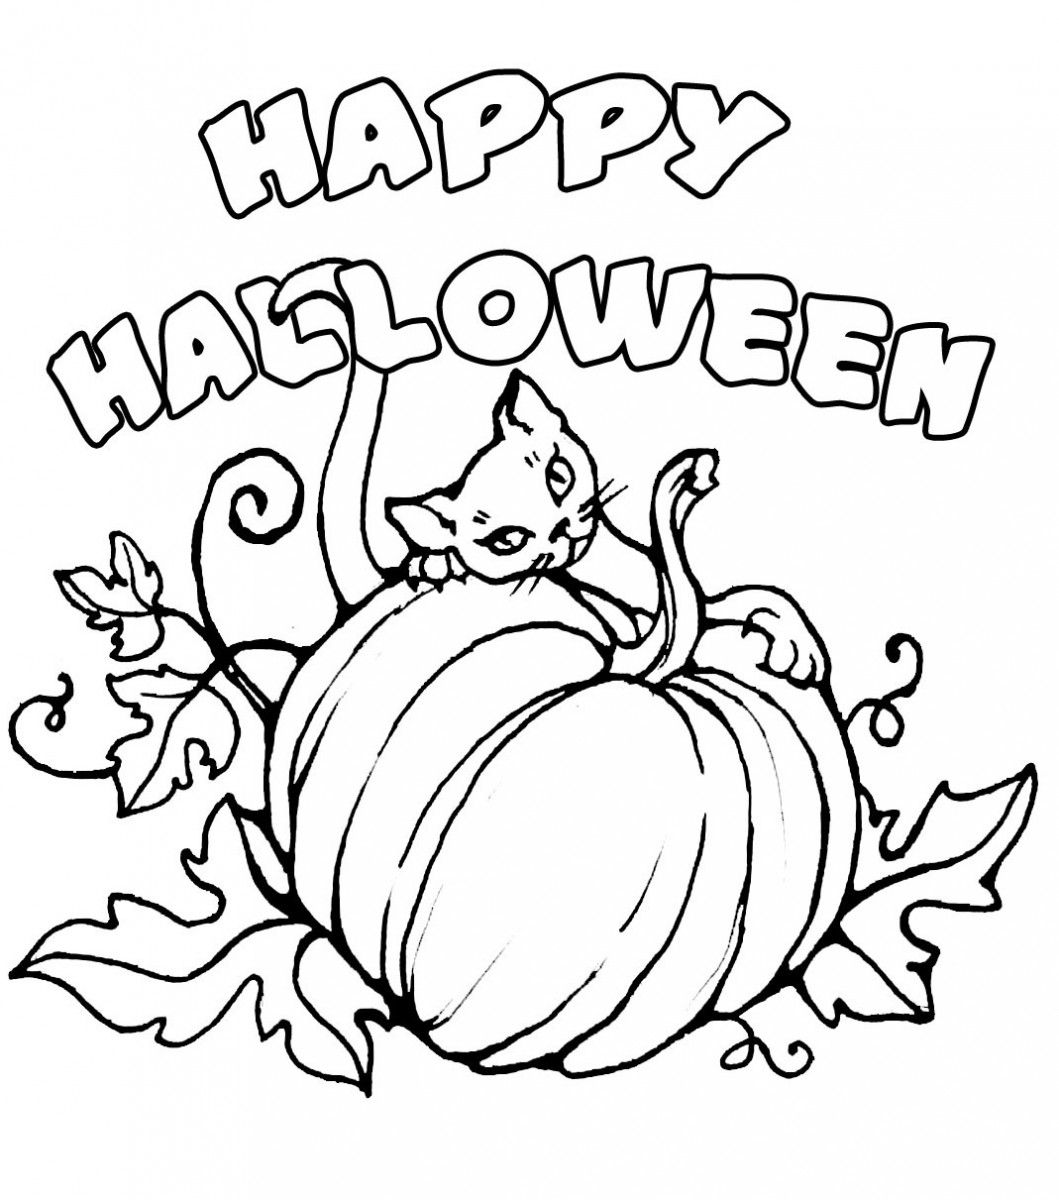 Funny Halloween Coloring Pages 5 Halloween coloring